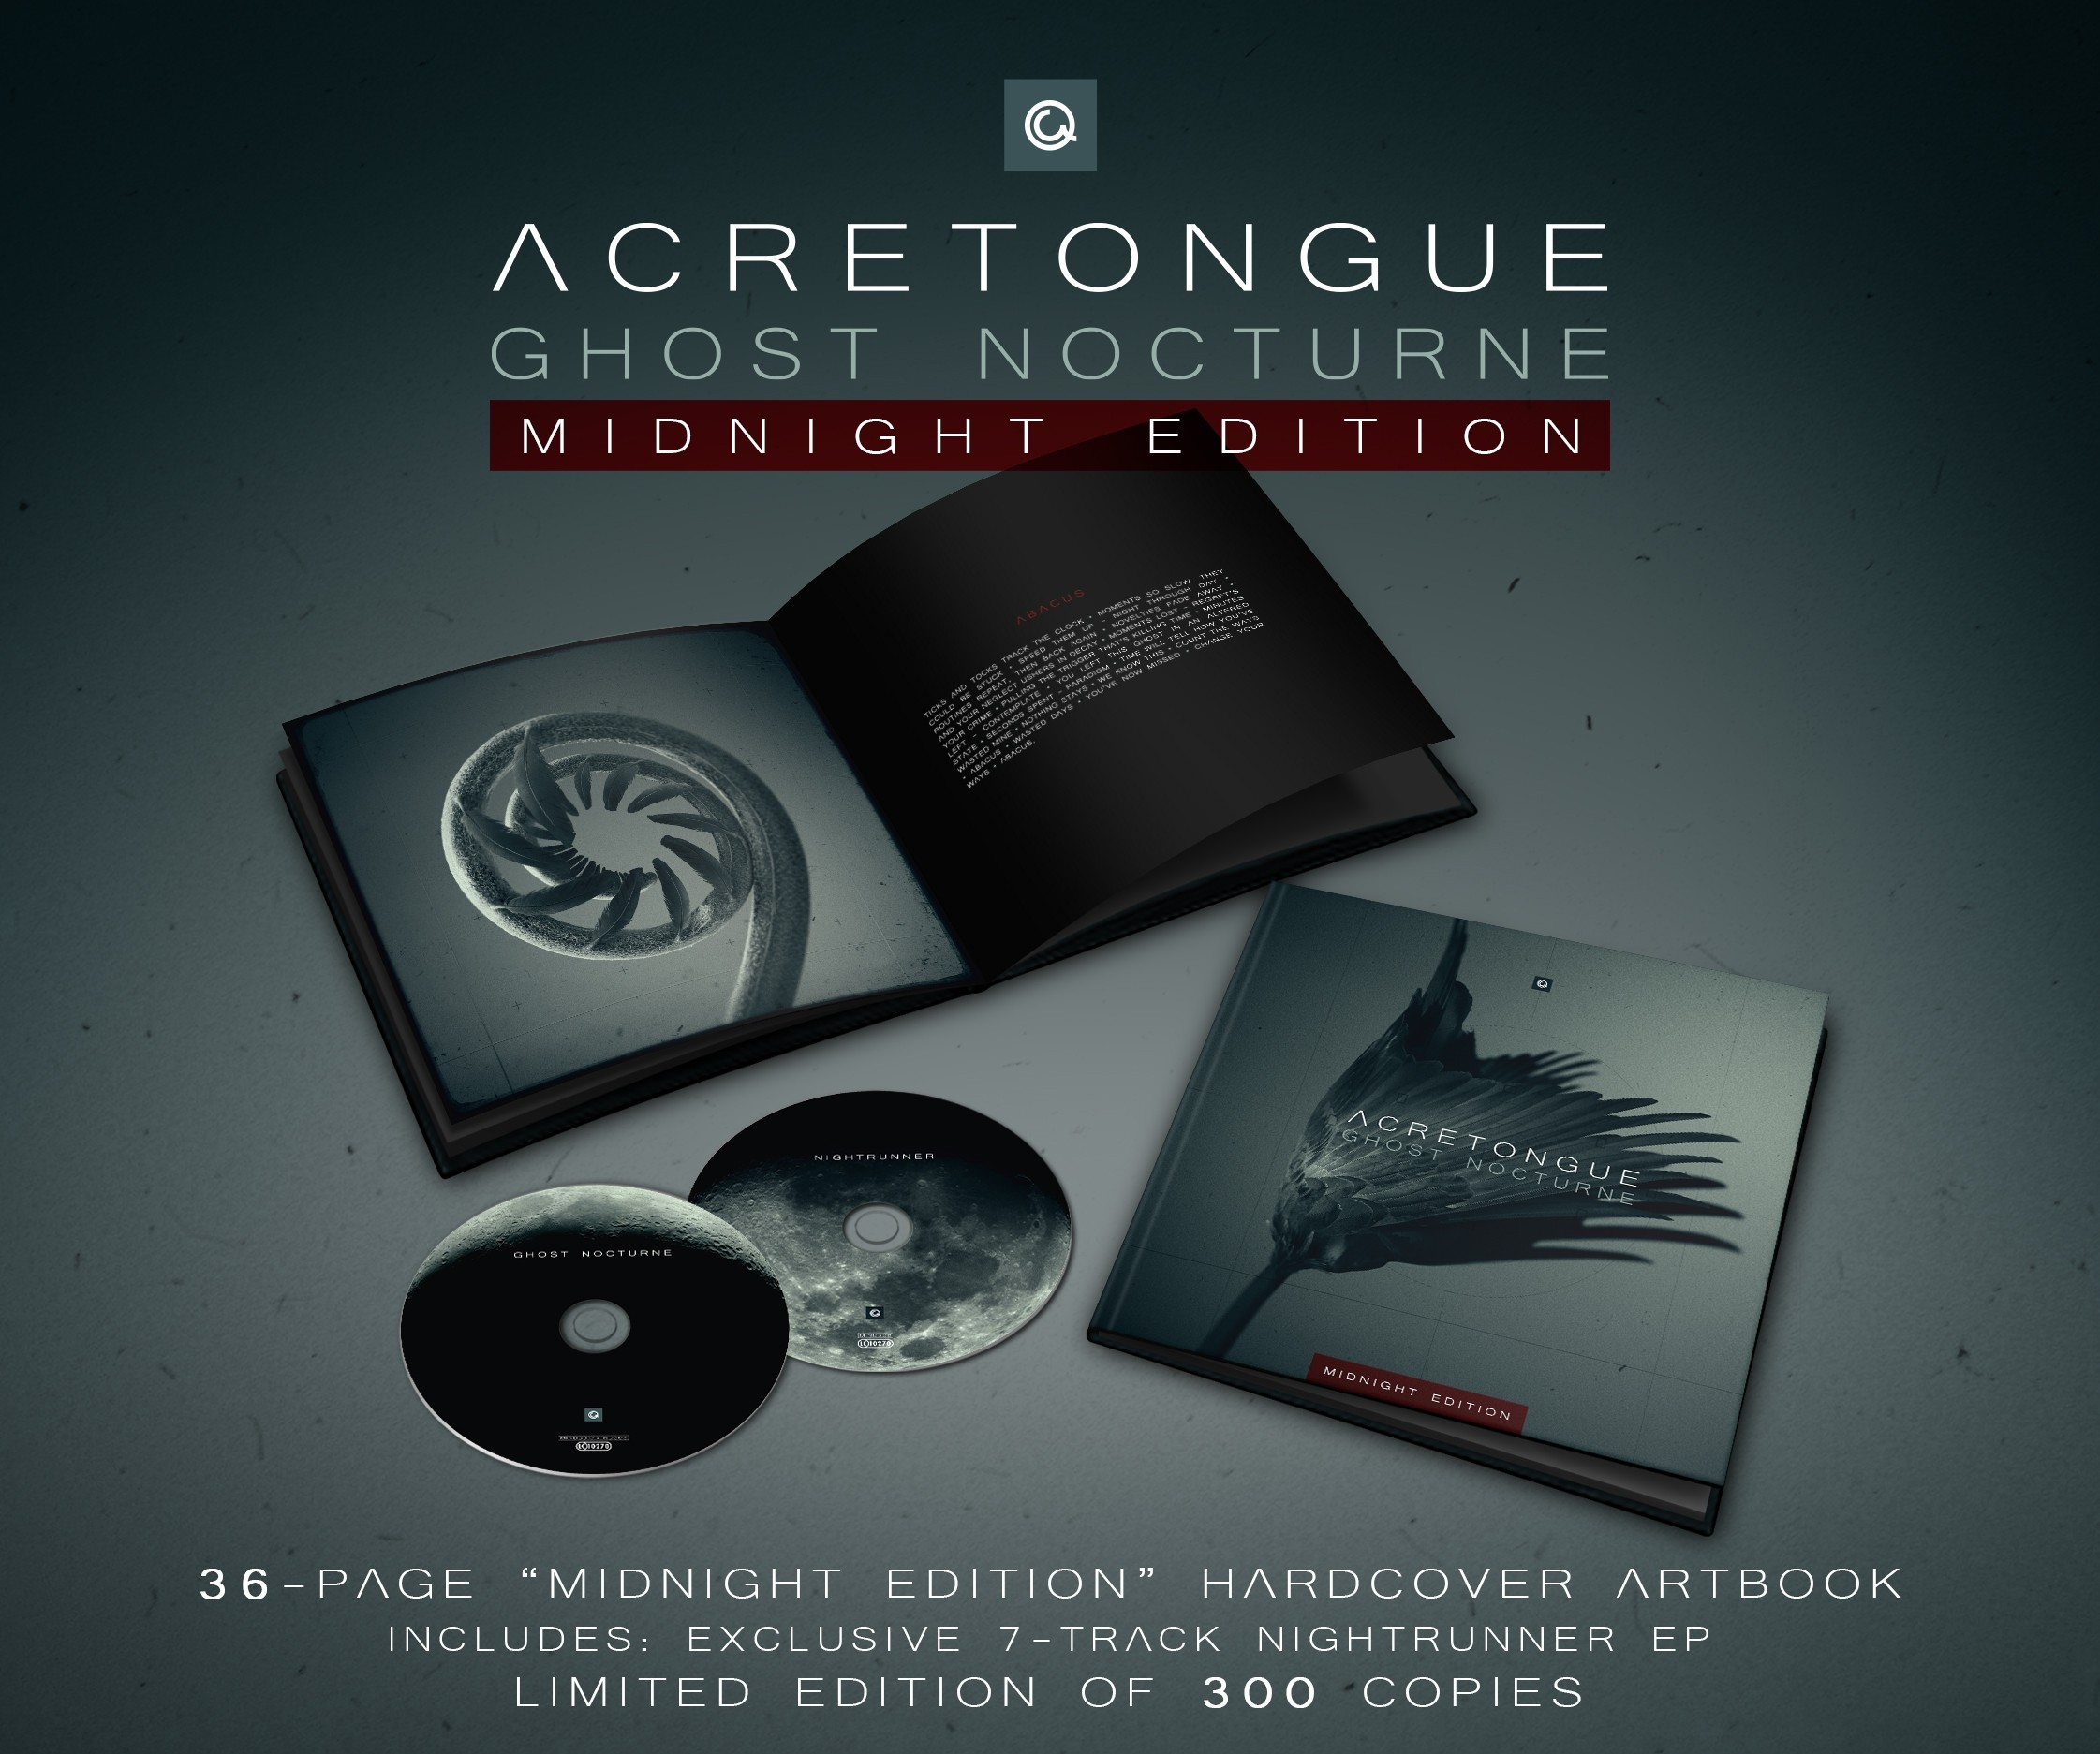 Acretongue - Ghost Nocturne (Limited Edition) - 2CD Book